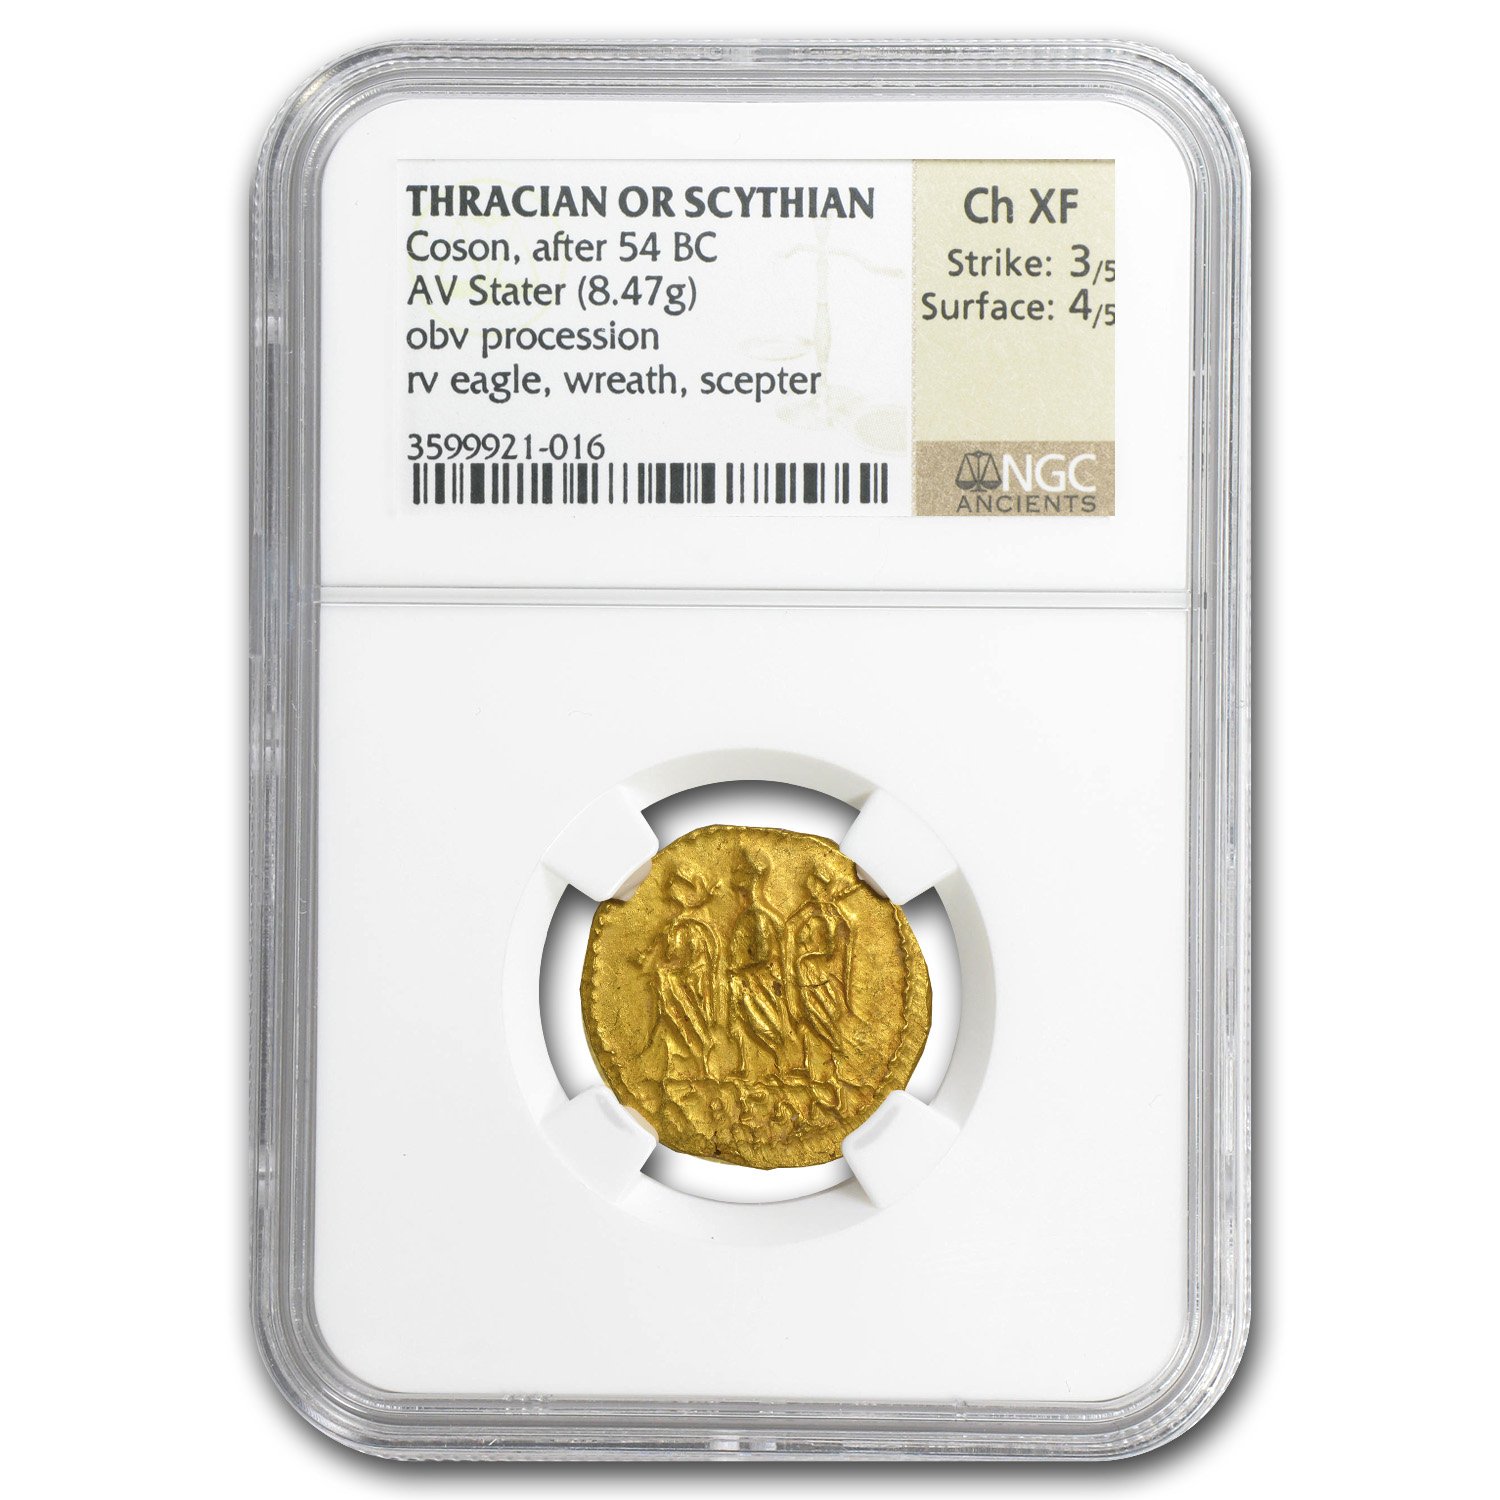 Thracian/Scythian Gold Stater Ch XF NGC (1st Century BC)